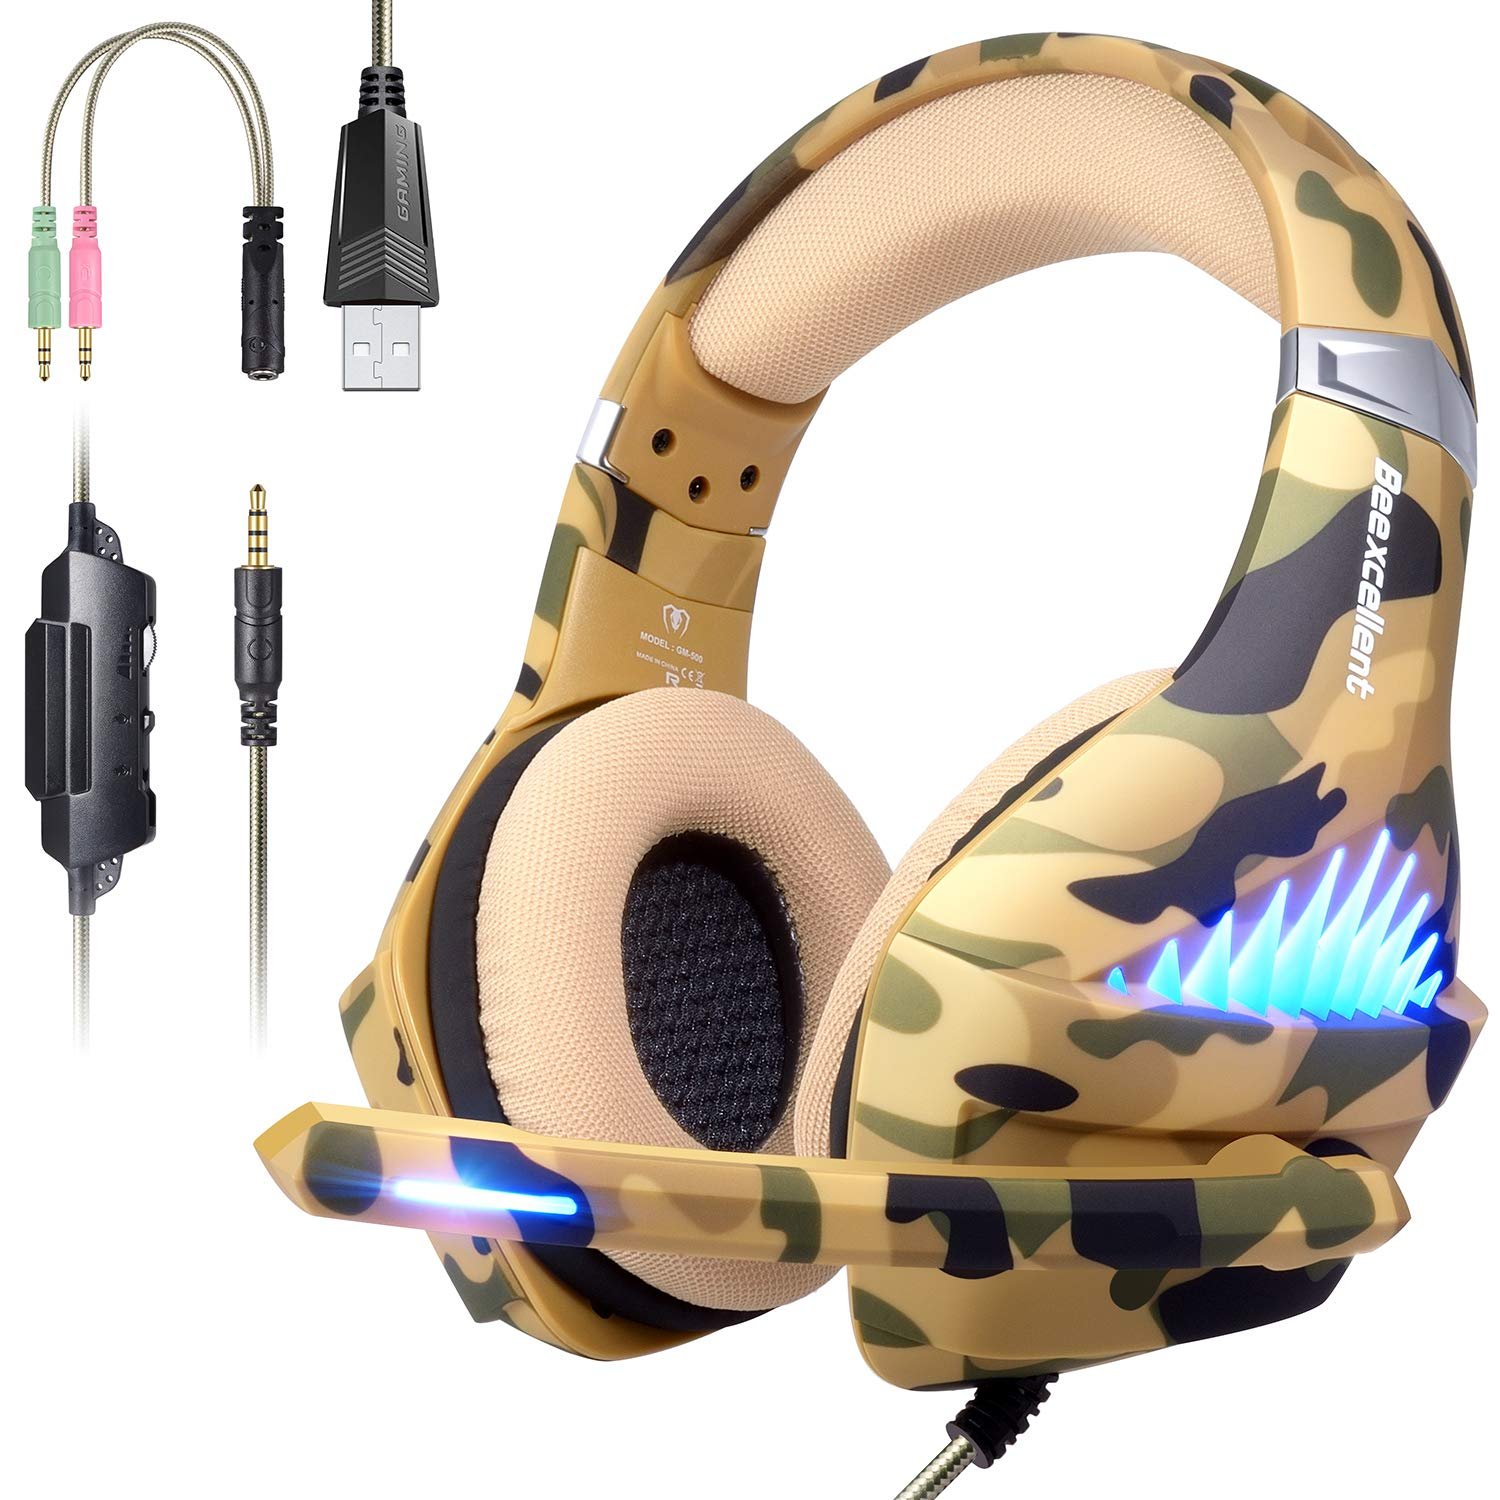 Gaming Headset for PS4, Xbox One, PC, Nintendo Switch, Laptop Cellphone -Stereo Surround Gaming Headphones with Microphone, Noise Cancelling, LED Lights, Volume Control 3.5 mm Jack - Camo by Beexcellent